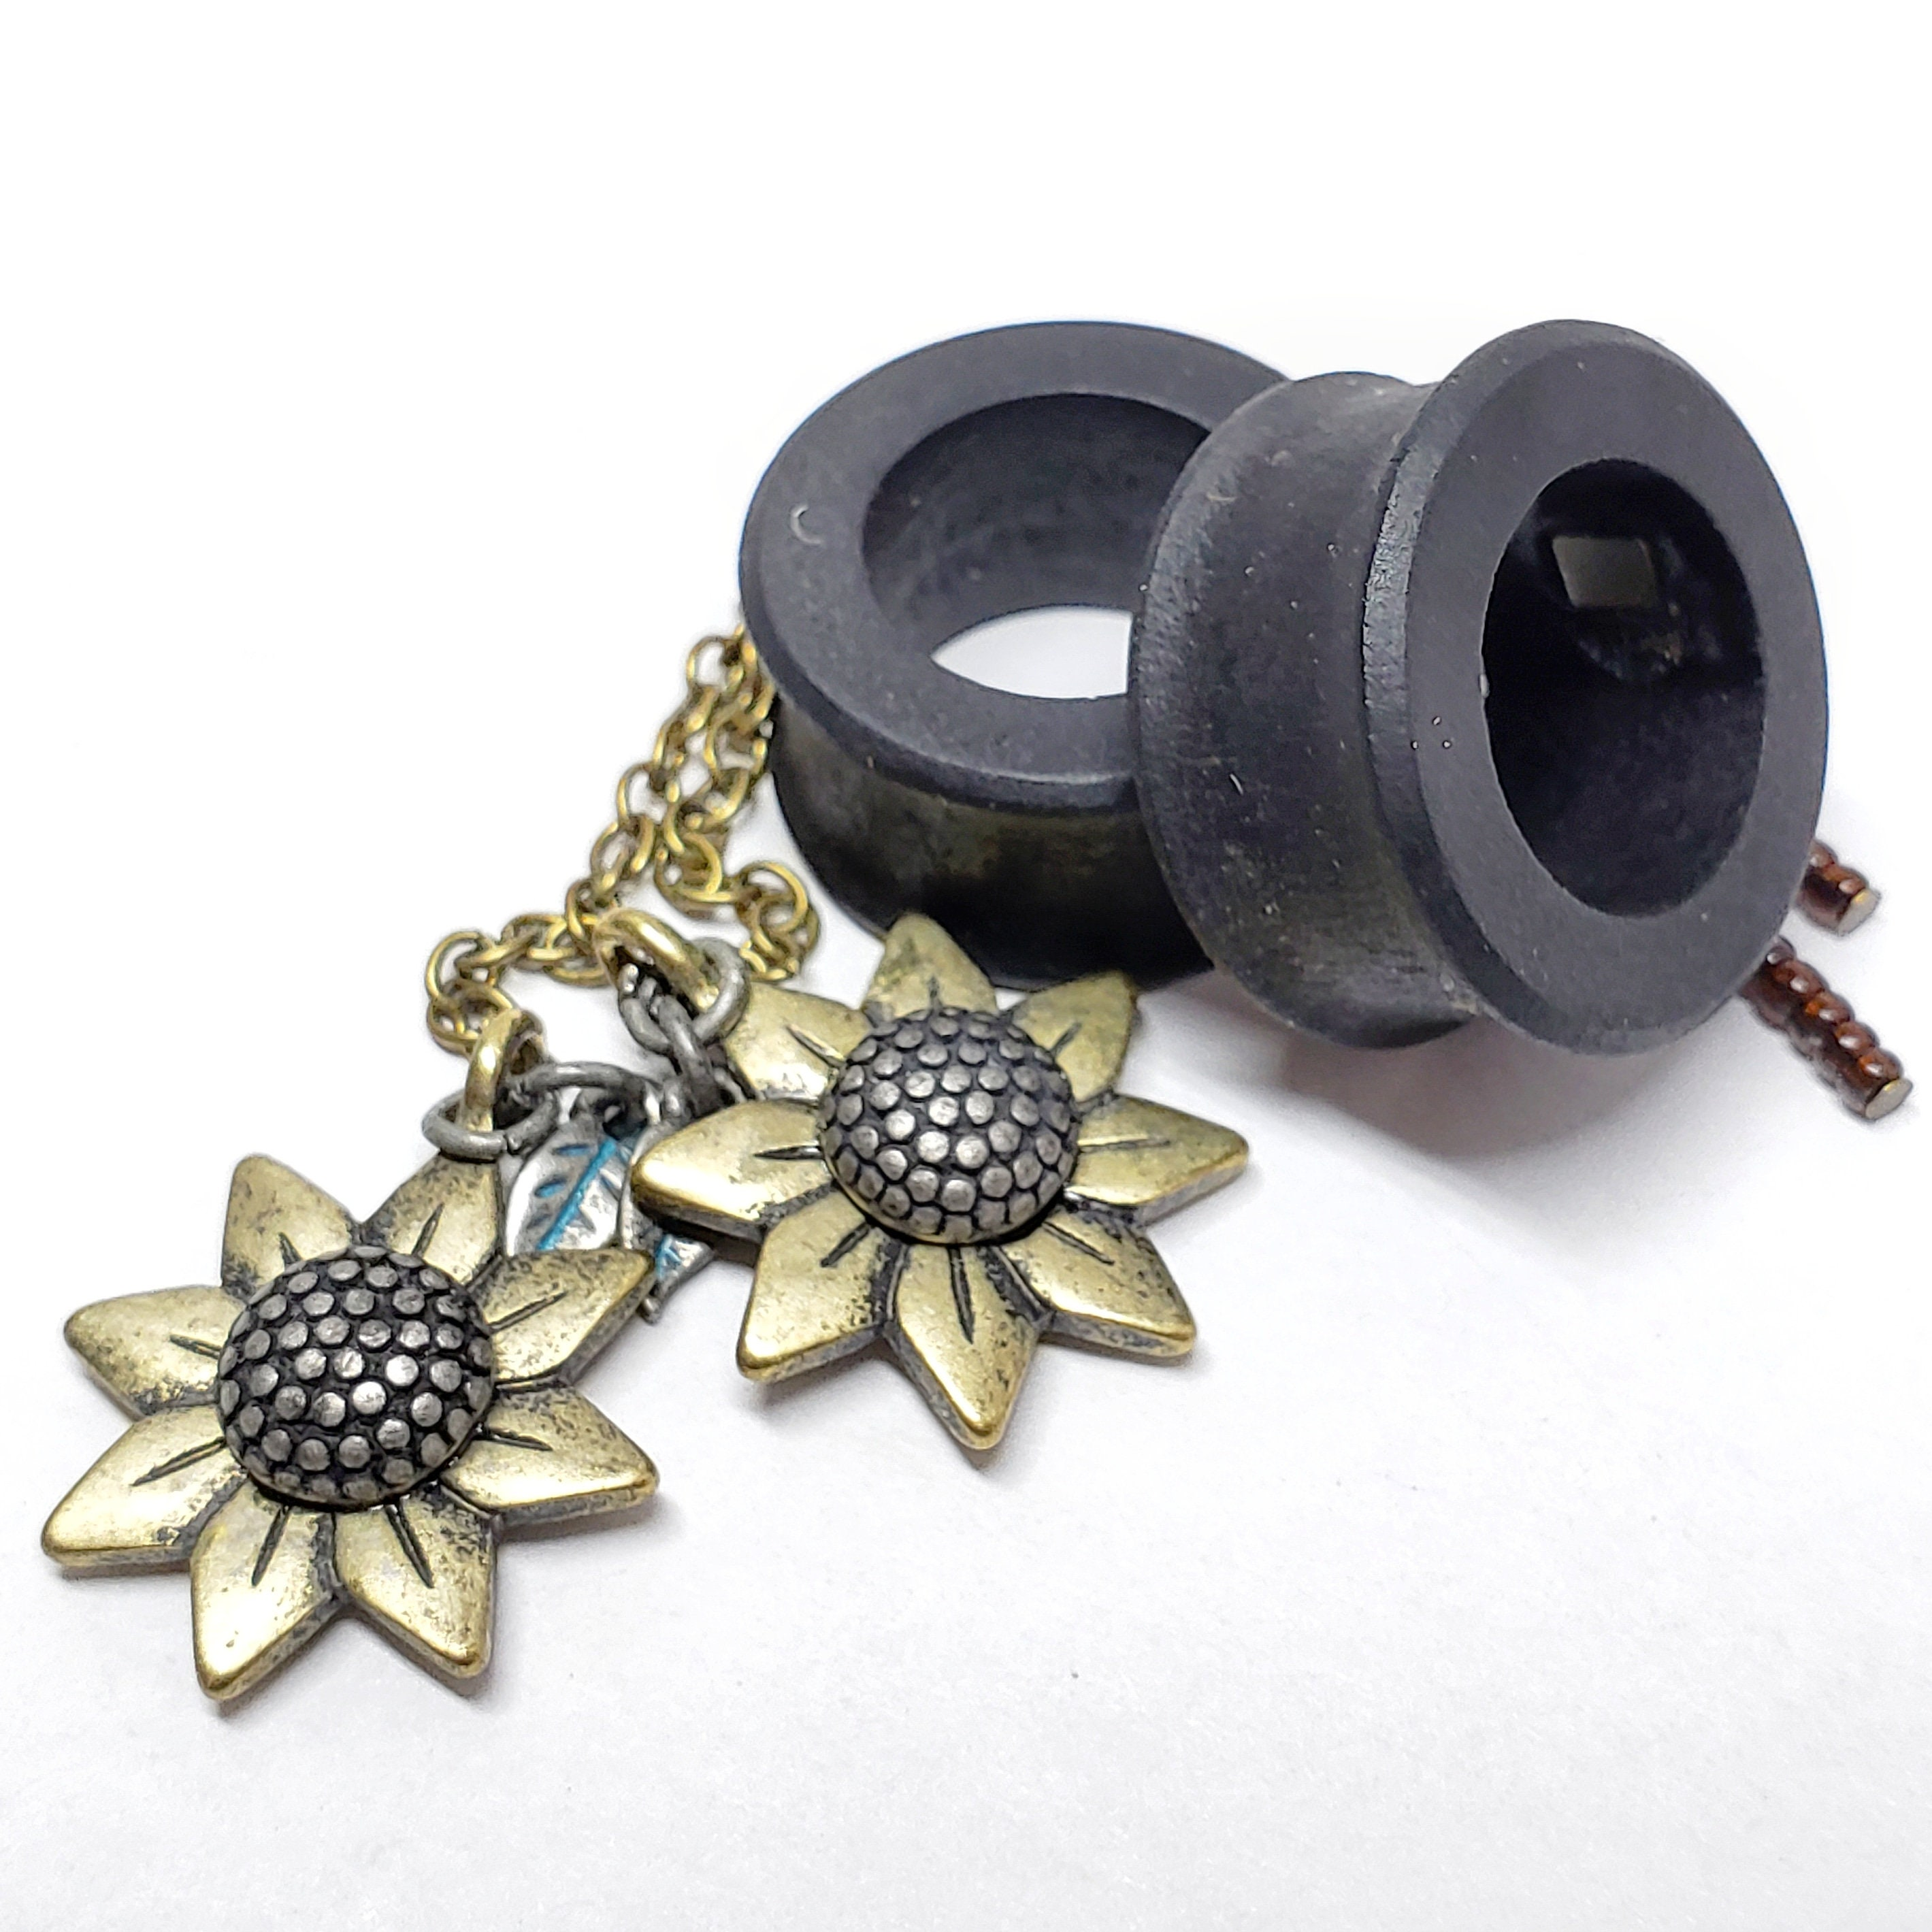 1 inch Pair of Black Flower Wood Tunnels and Steel Pendant Necklace 2g